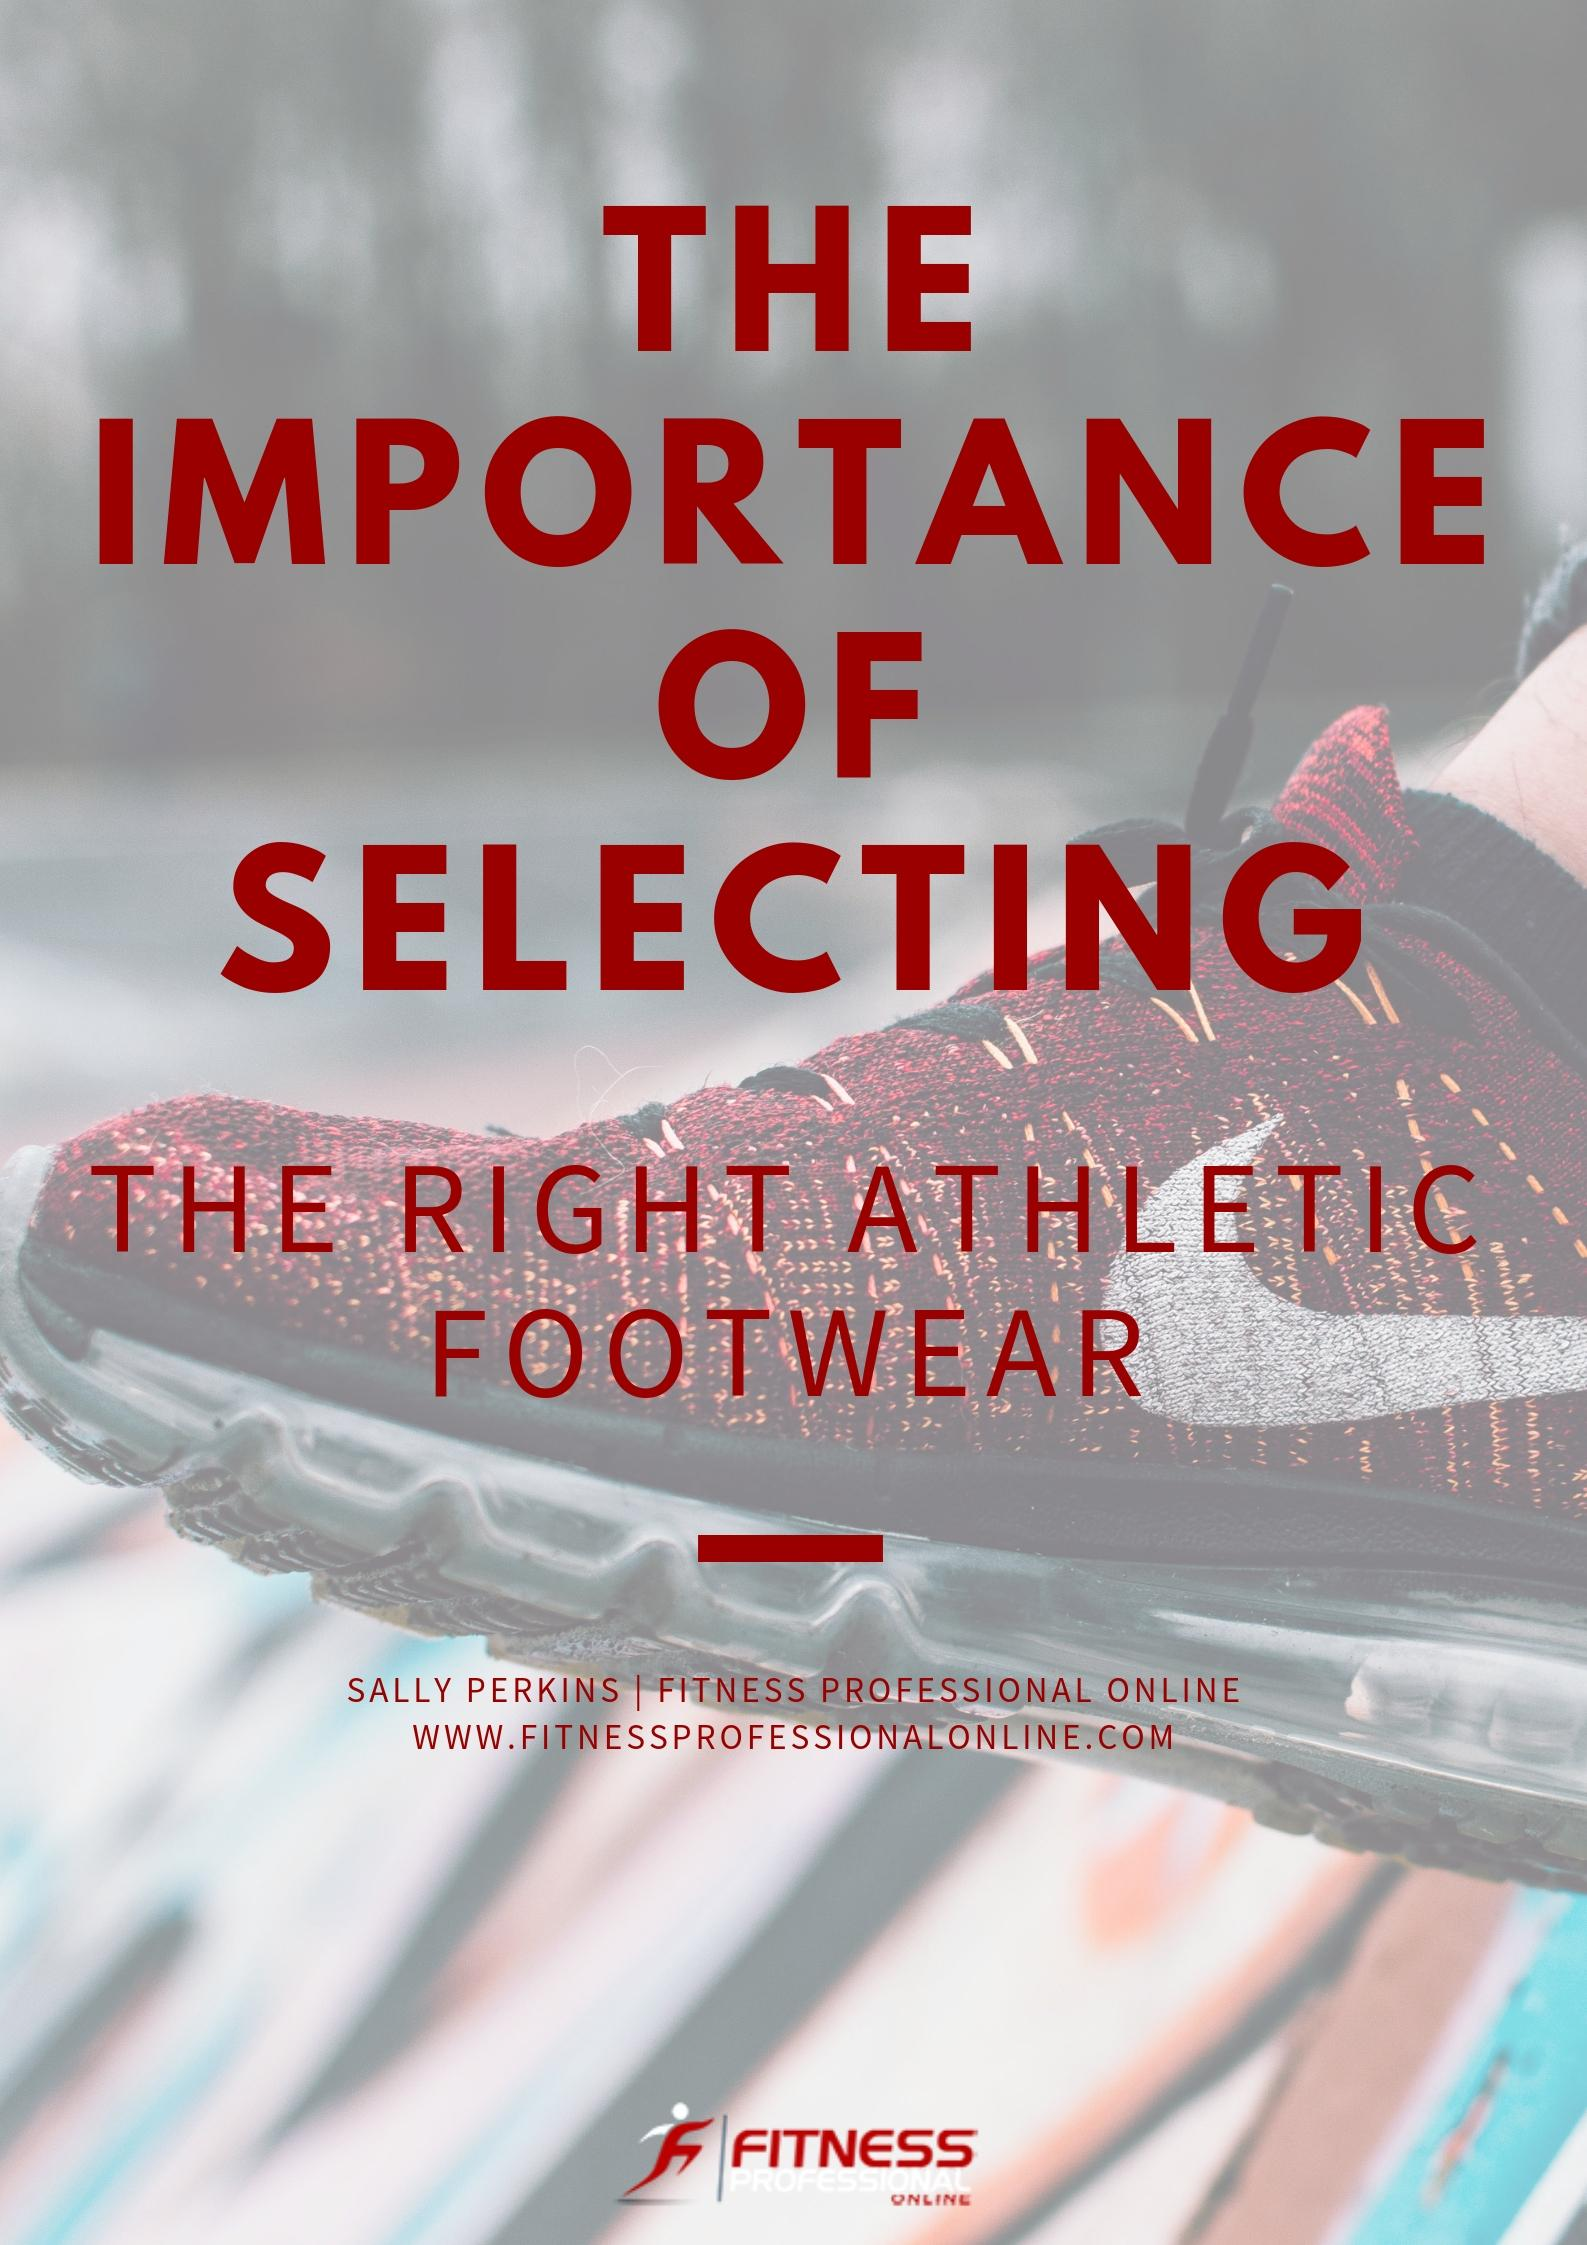 It's important to stay informed and lead by example by selecting footwear that ensures for the best possible workout.